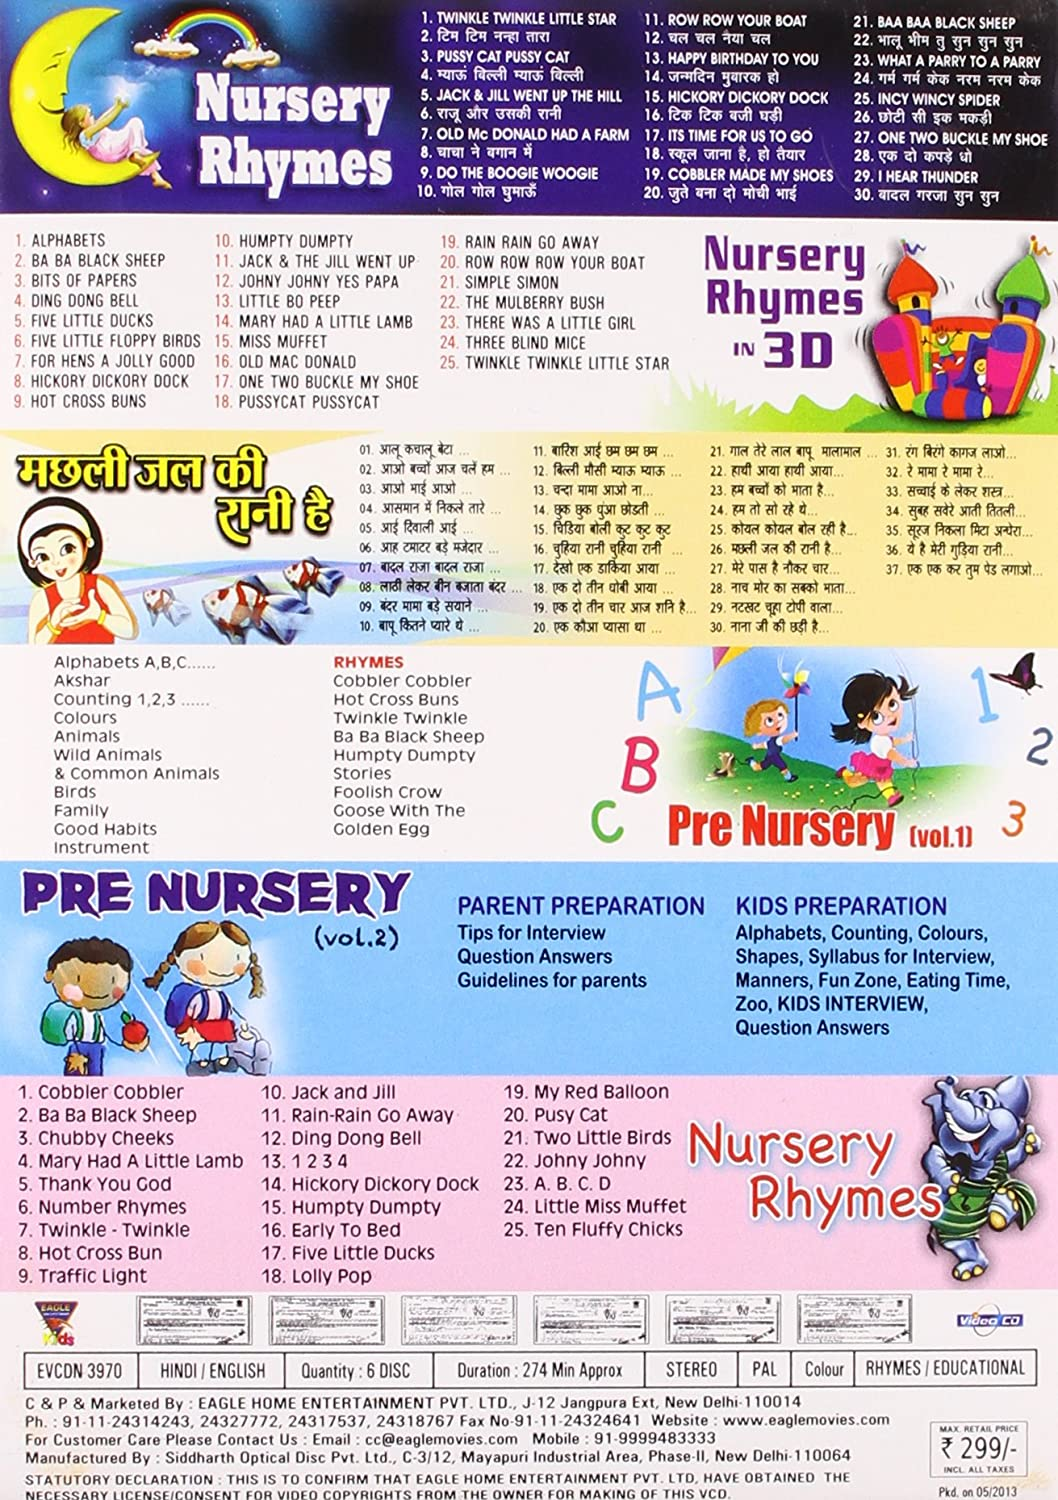 in buy nursery rhymes set pack of vcd dvd blu ray in buy nursery rhymes set 2 pack of 6 vcd dvd blu ray online at best prices in movies tv shows